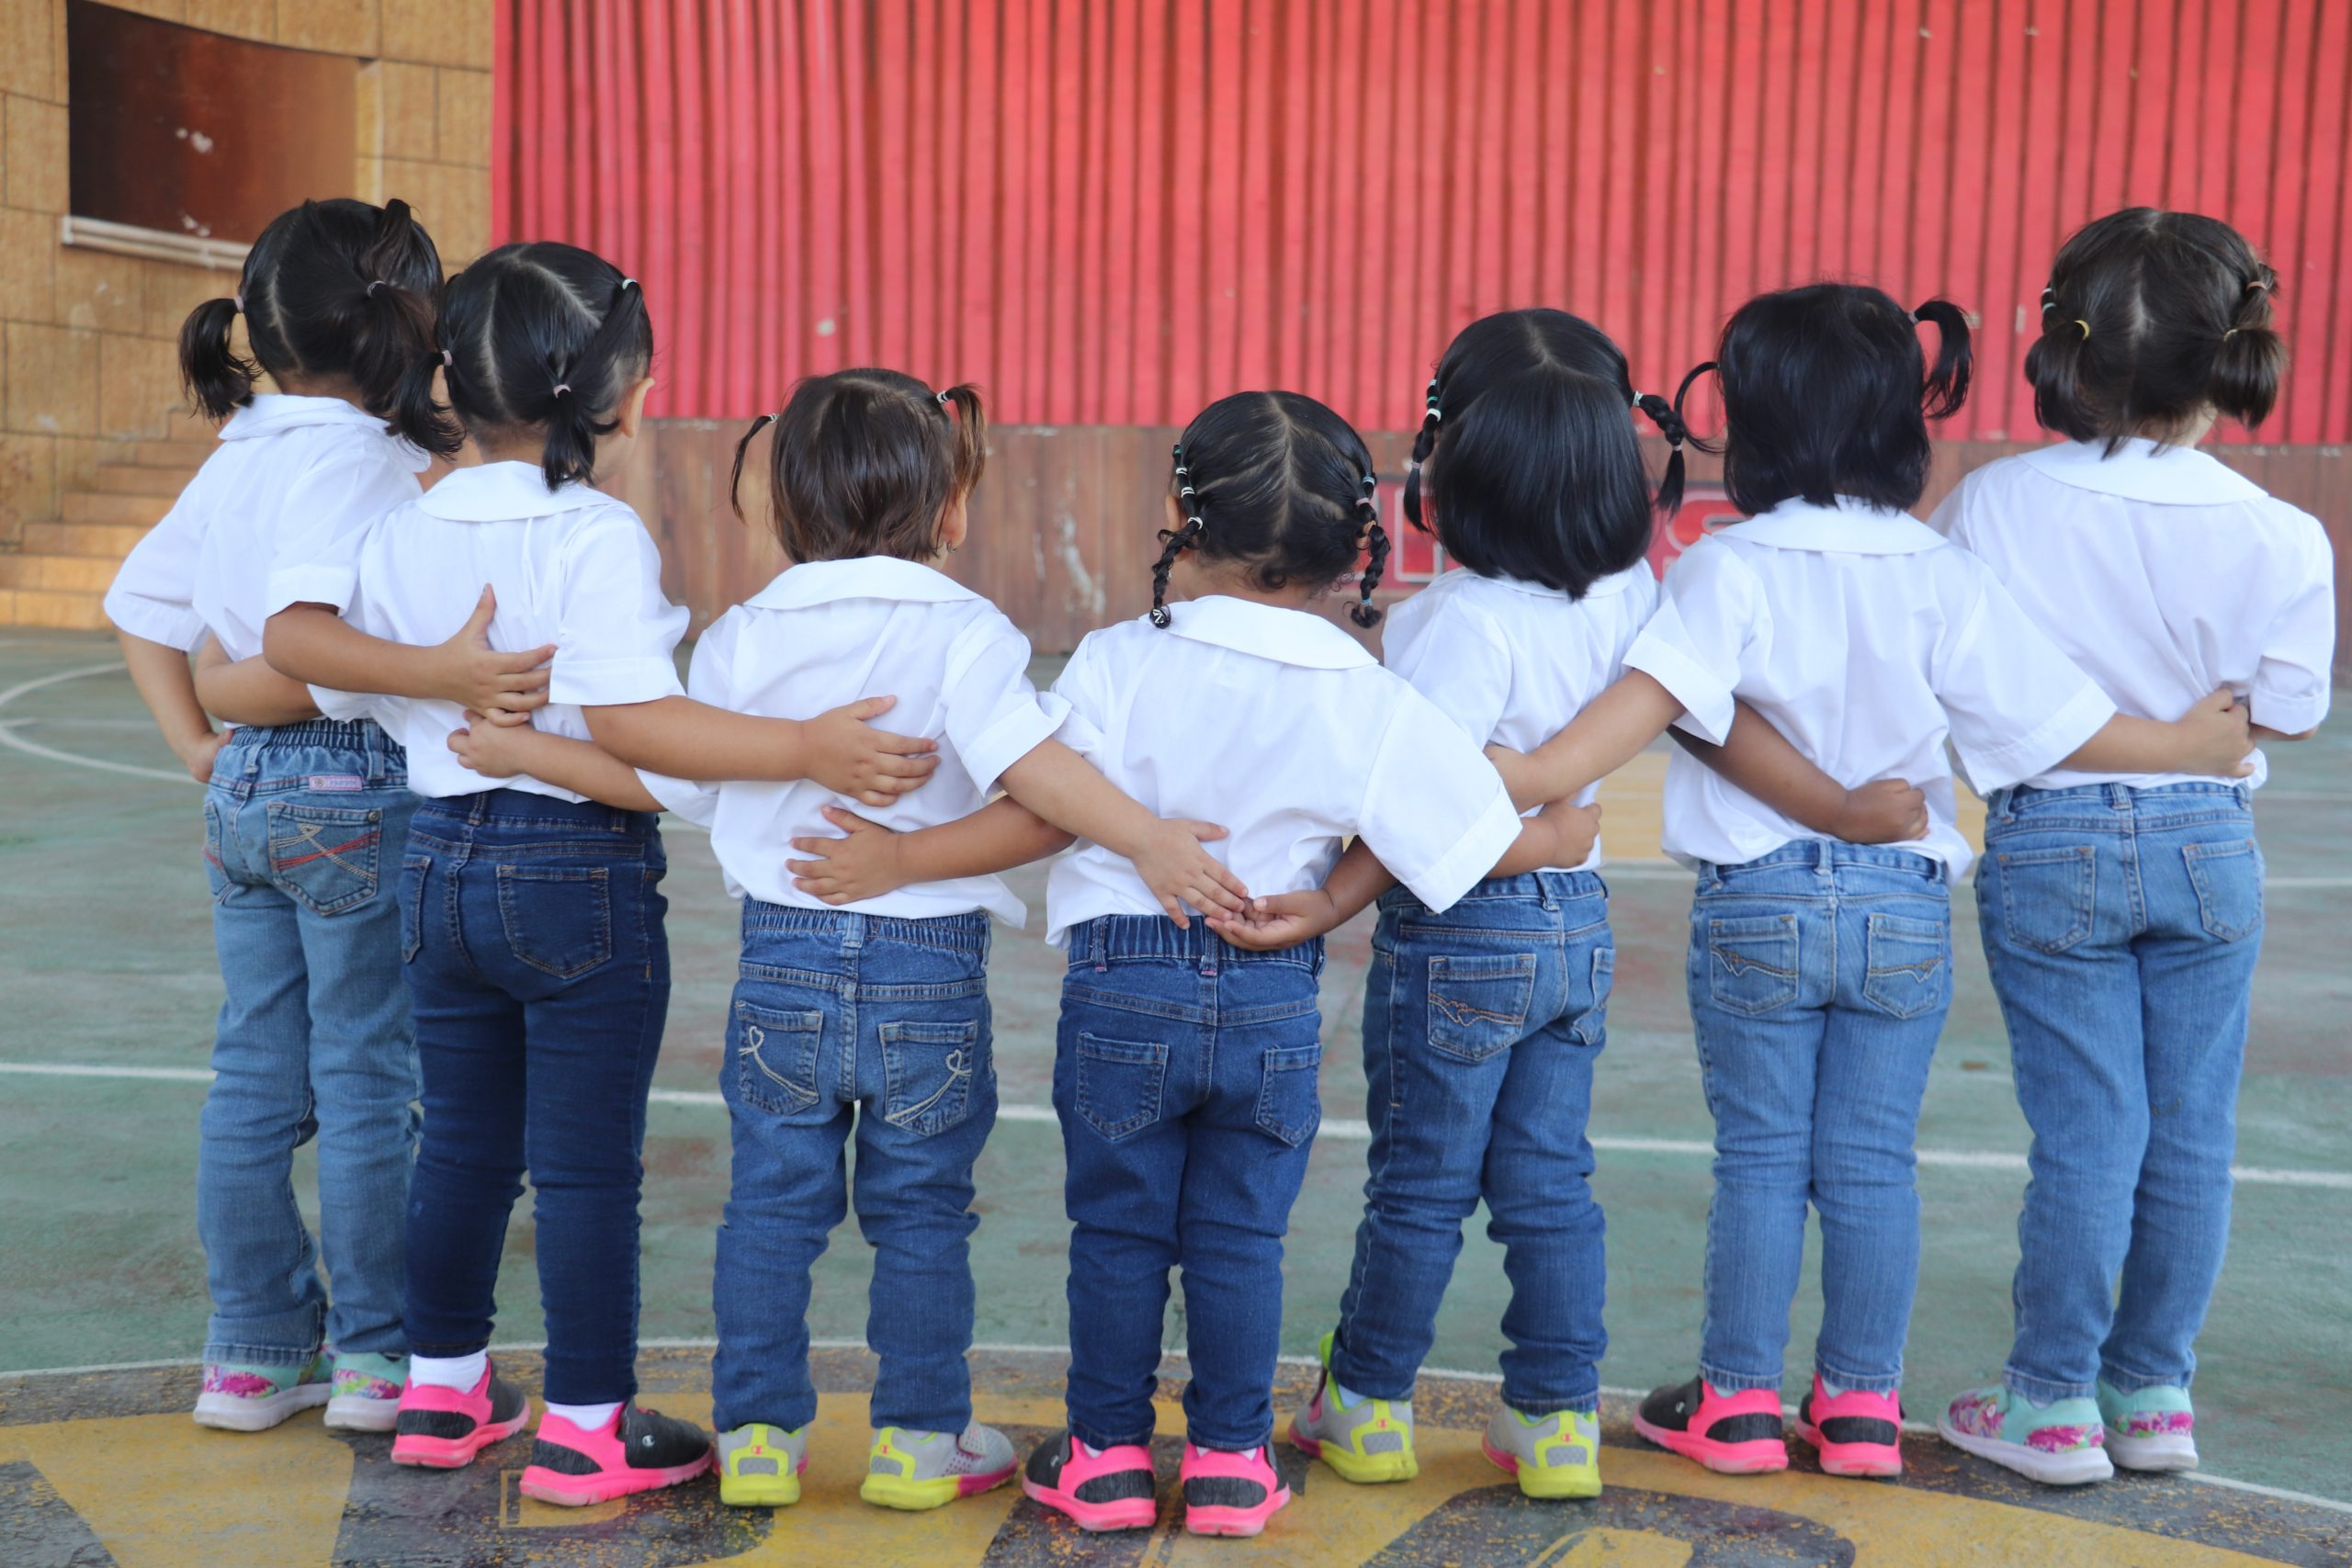 Every girl at Our Little Roses has a past, and more importantly, a future. This Is Our Story